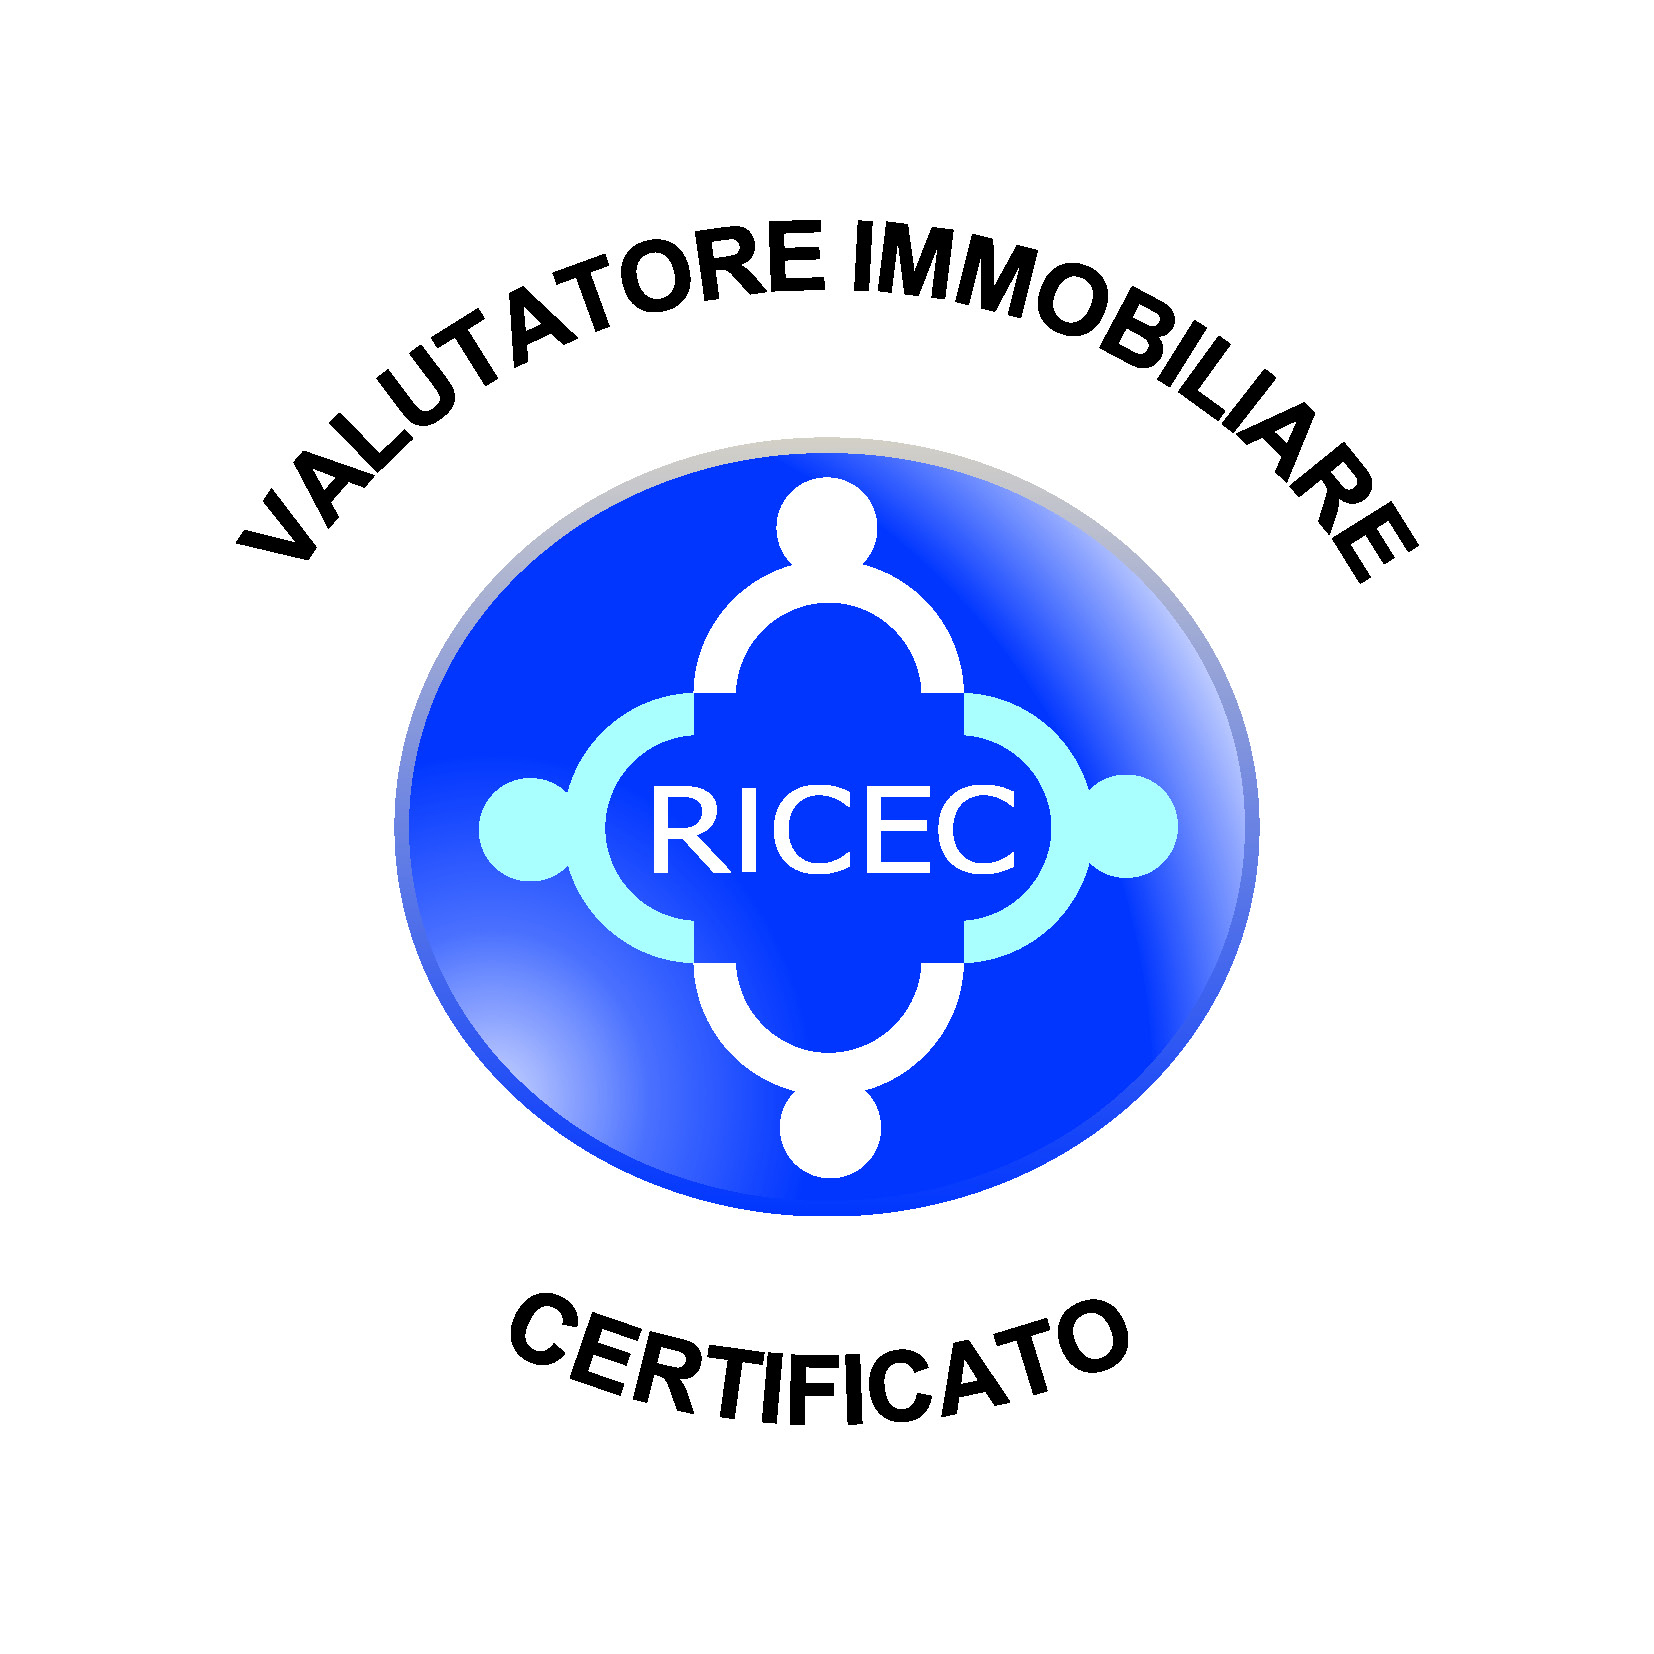 Valutatore Immobiliare Certificato